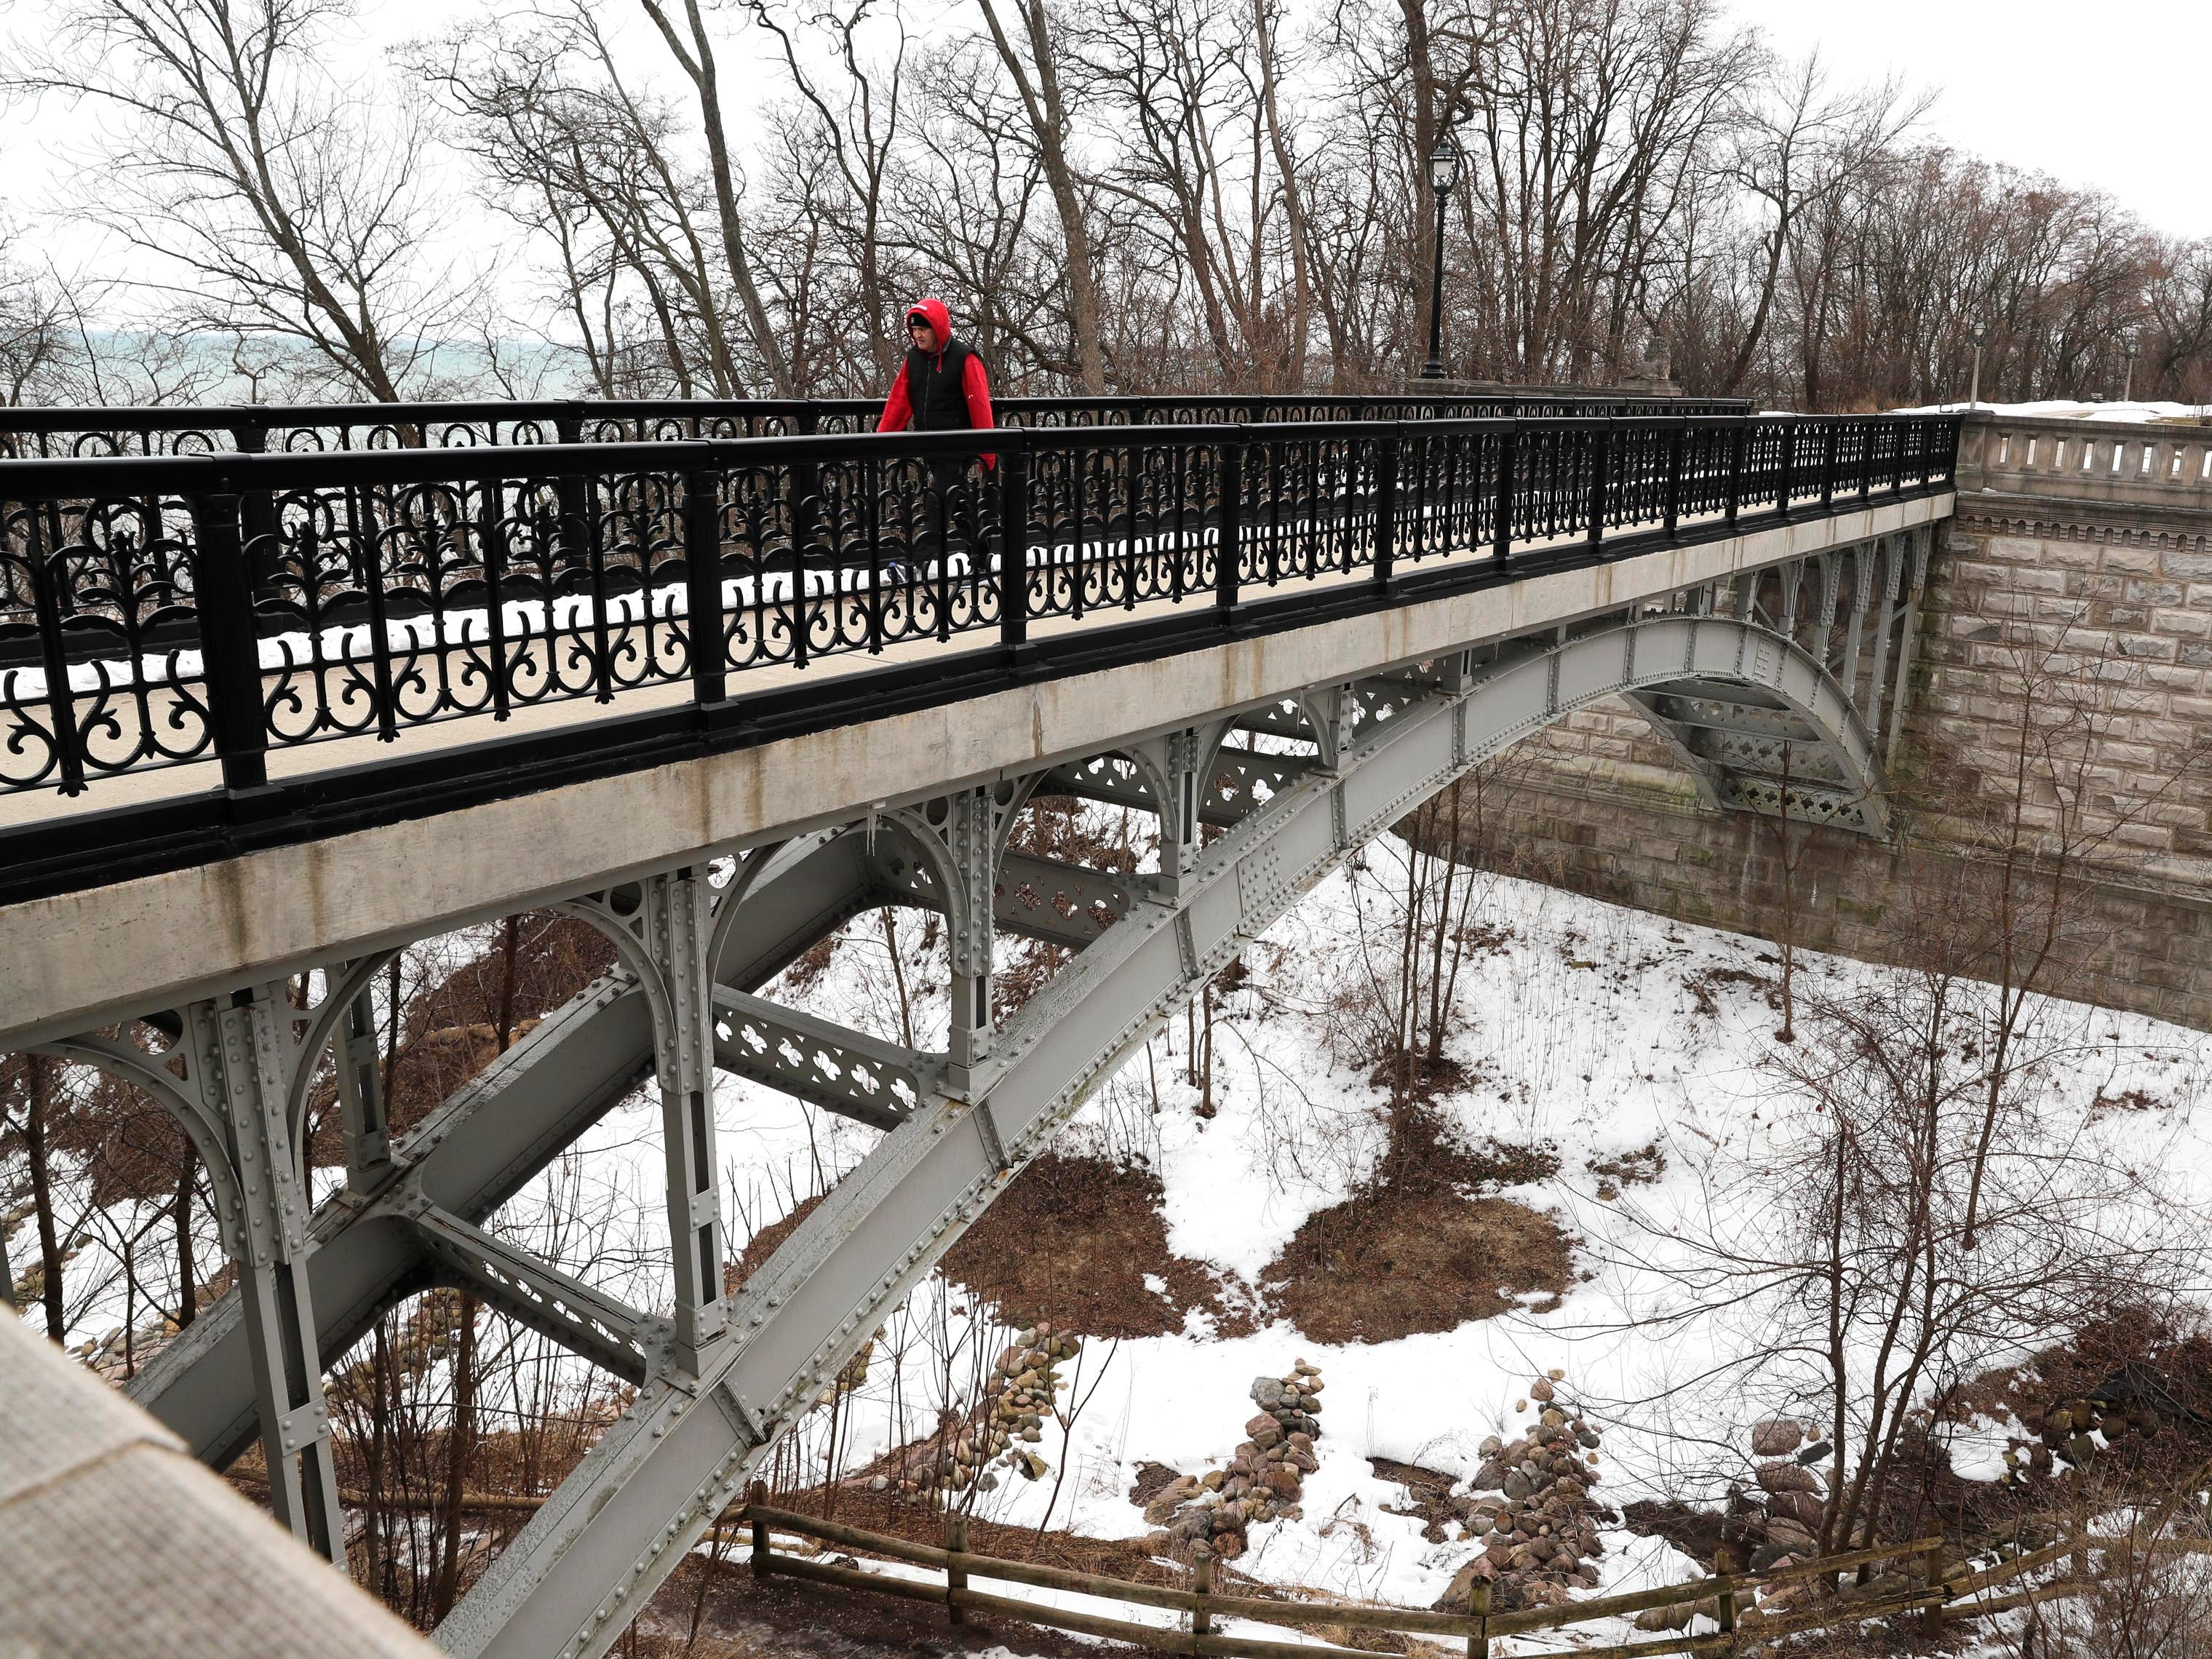 A separate bridge in Lake Park, the steel arch bridge, constructed in 1893, was previously upgraded.